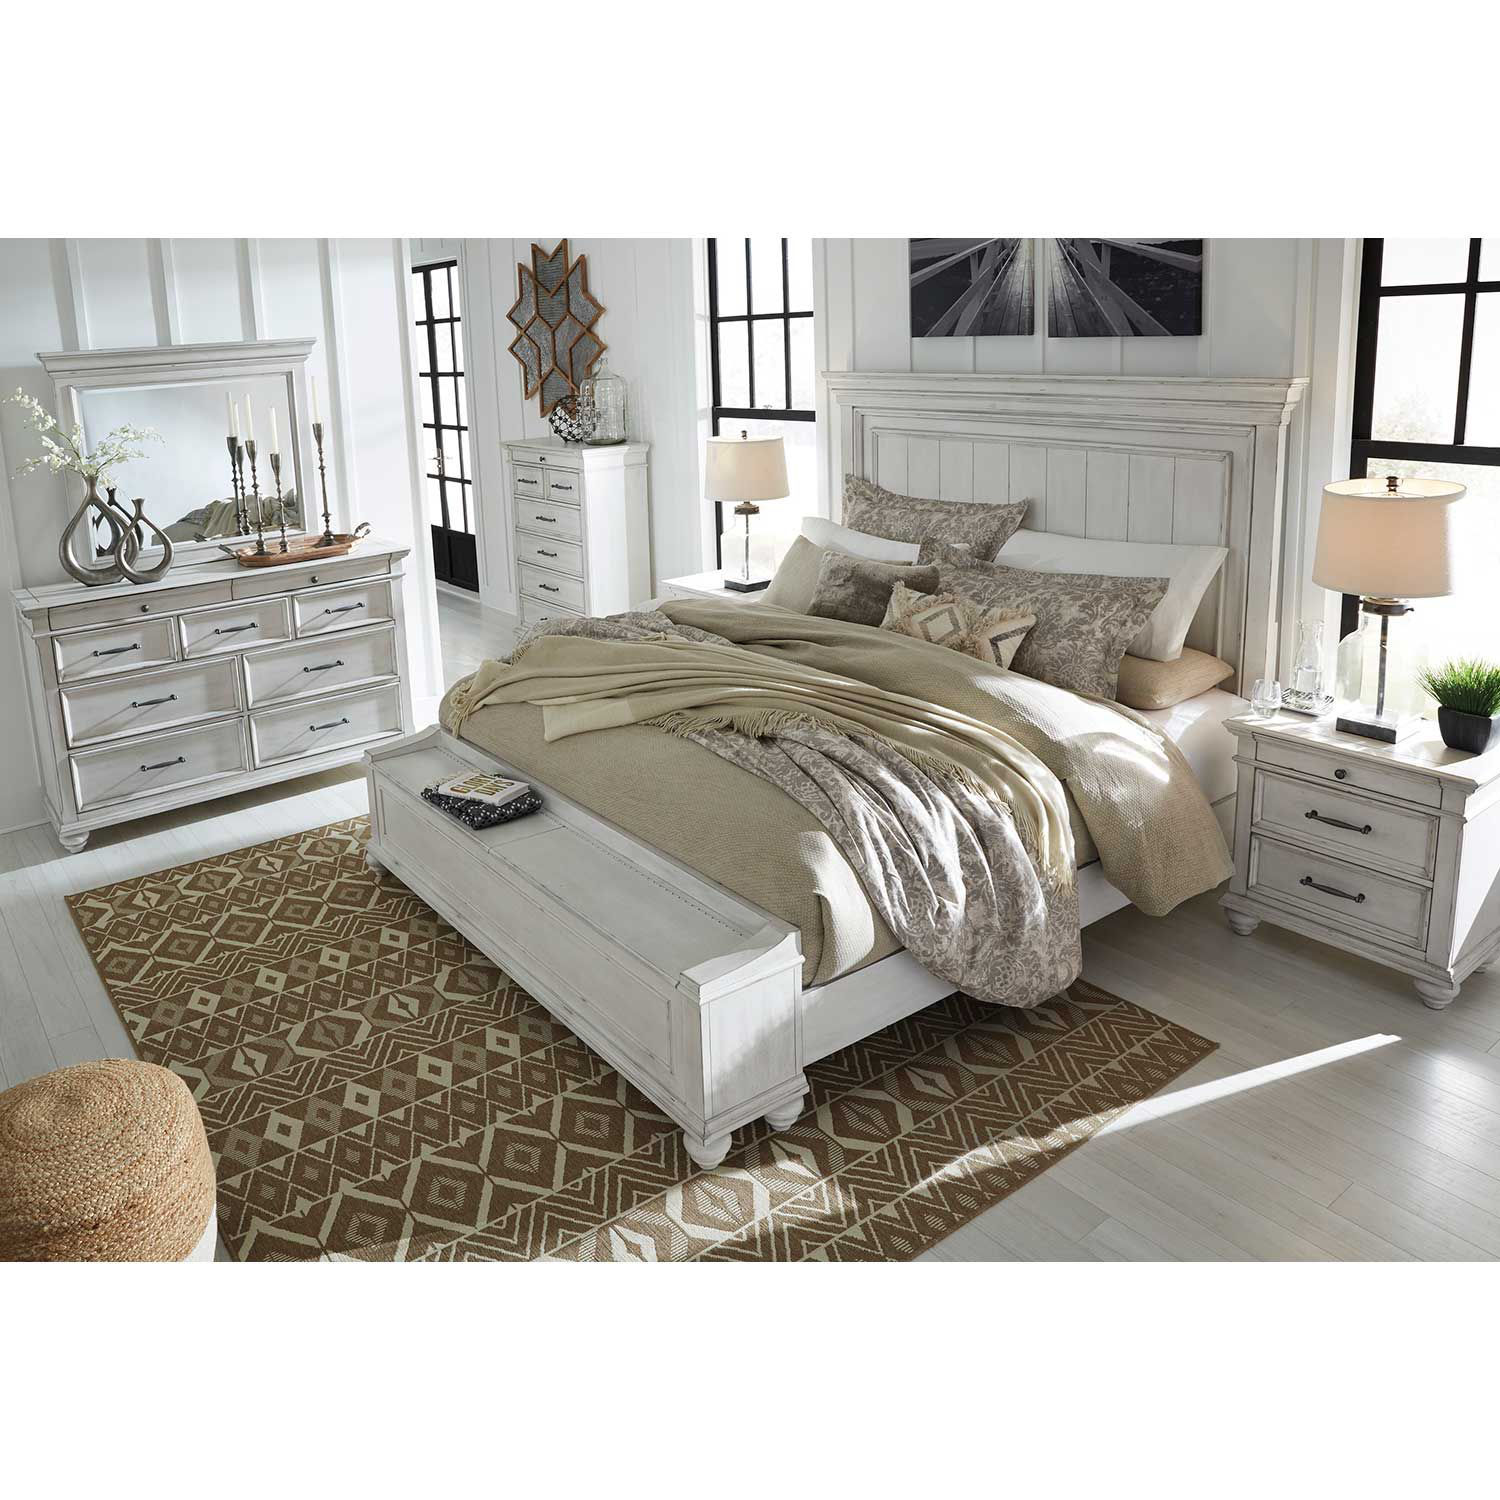 Picture of Kanwyn 5 Piece Bedroom set